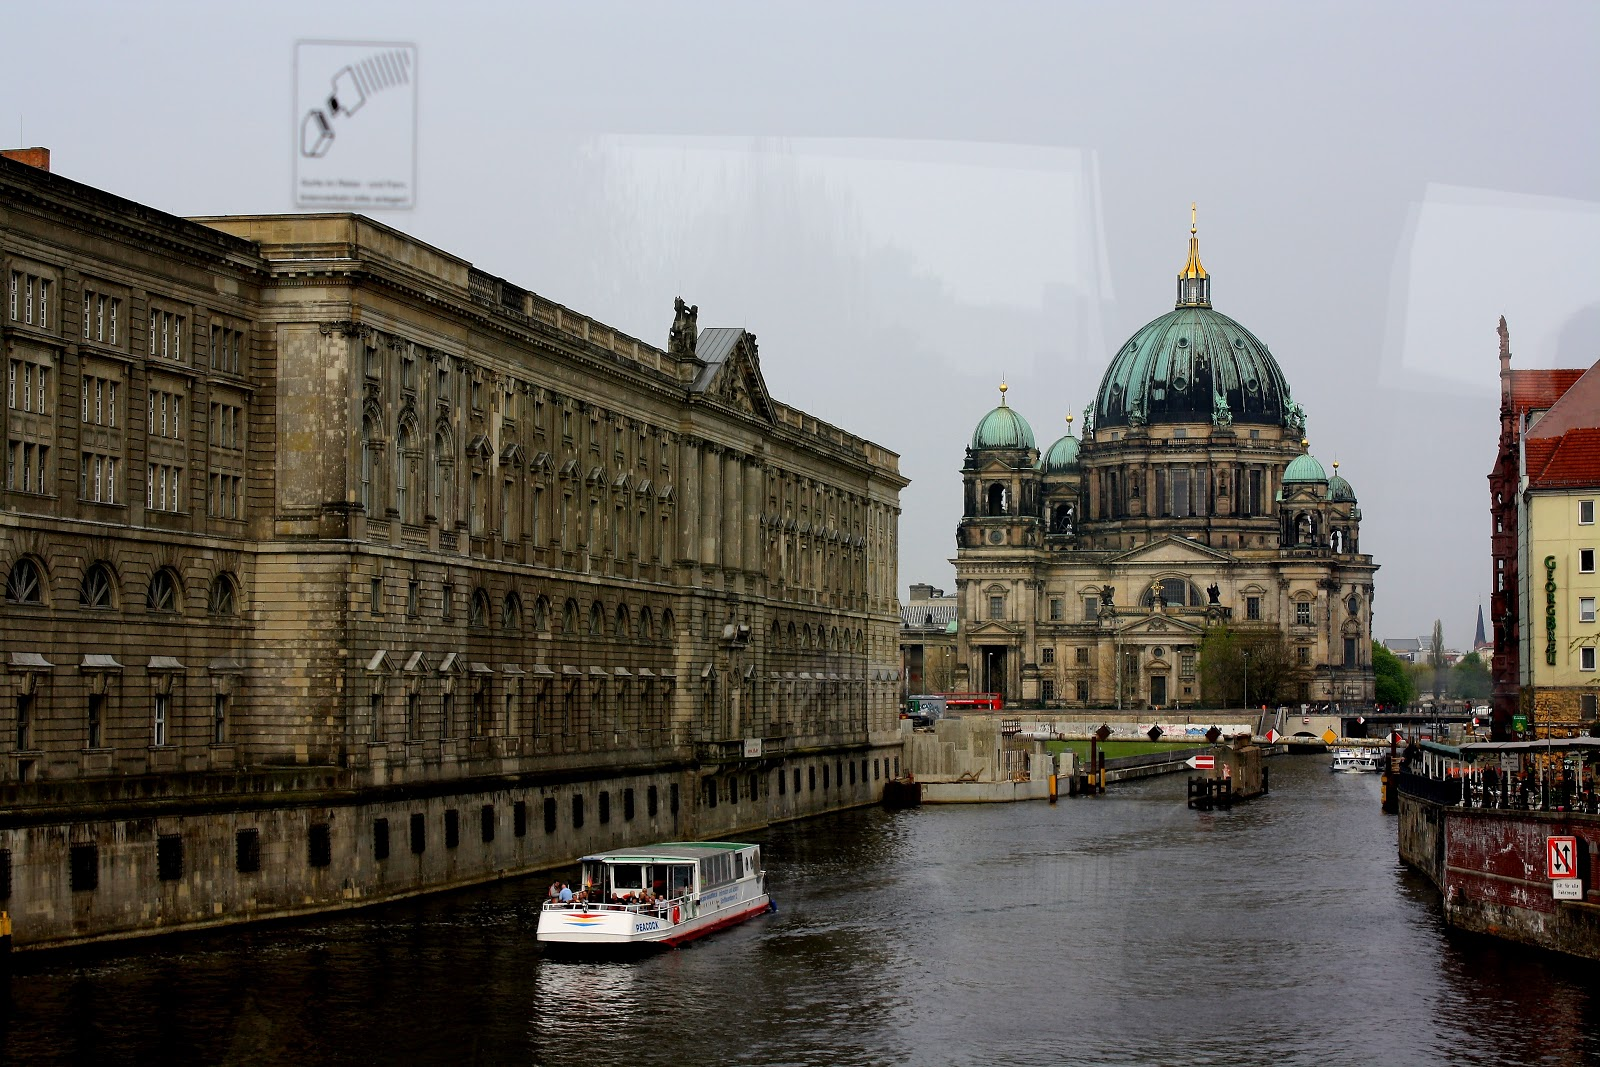 Ladee 39 s travels berlin architecture in 2011 for Architecture berlin